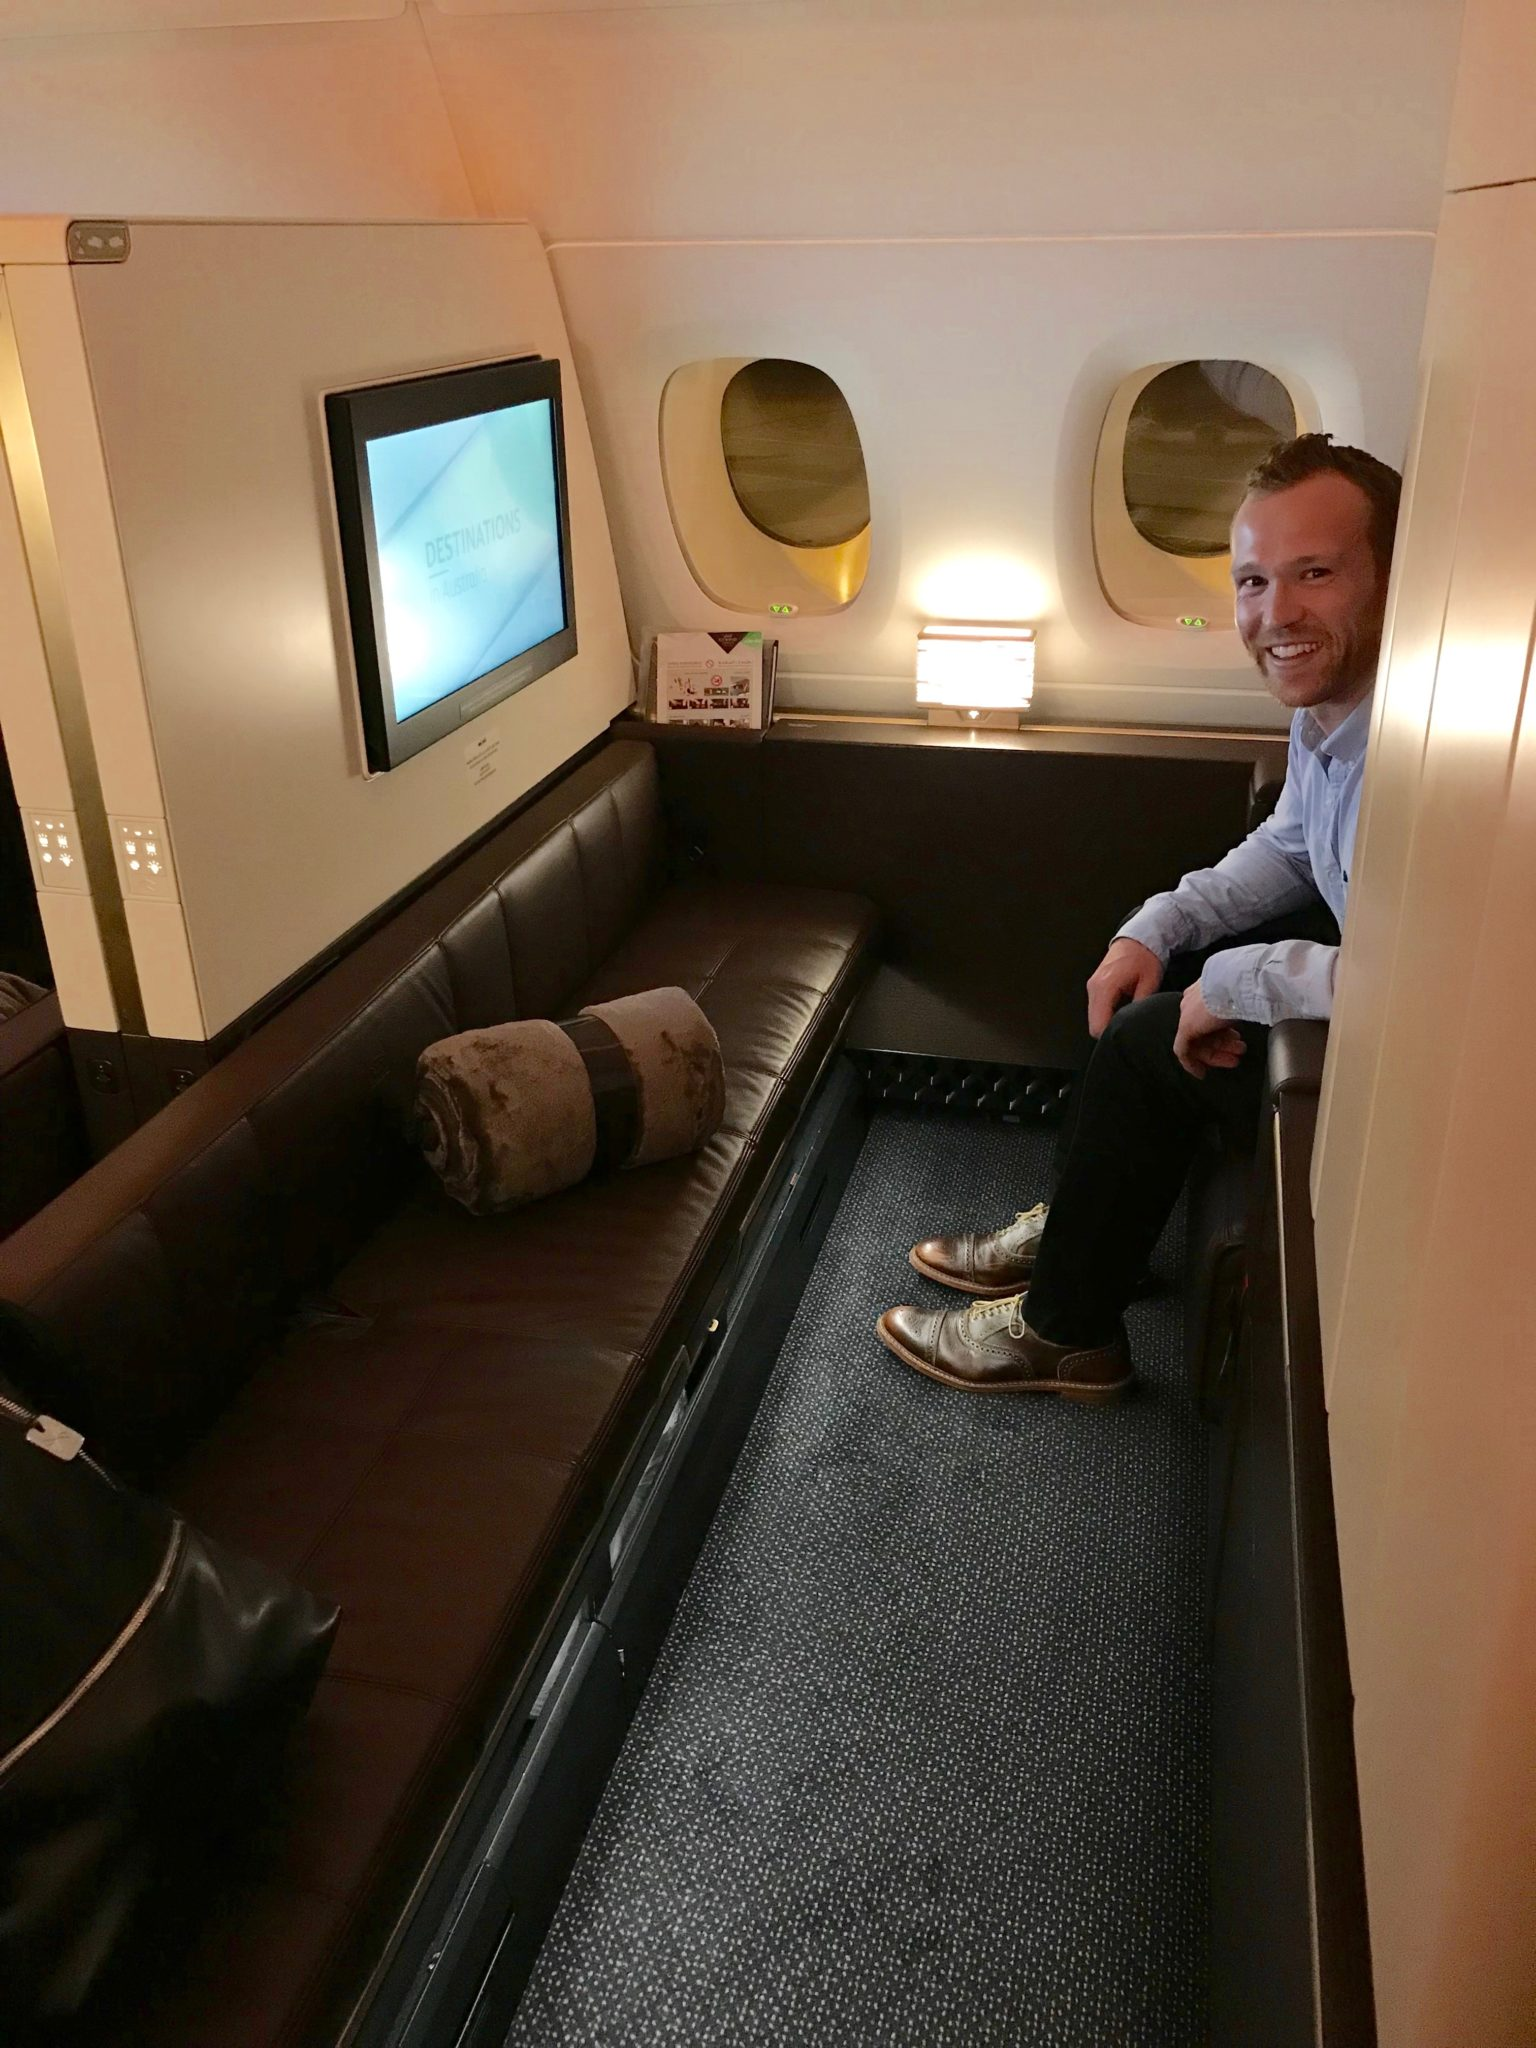 Etihad First Class Apartment - Apartment 4K from Doorway